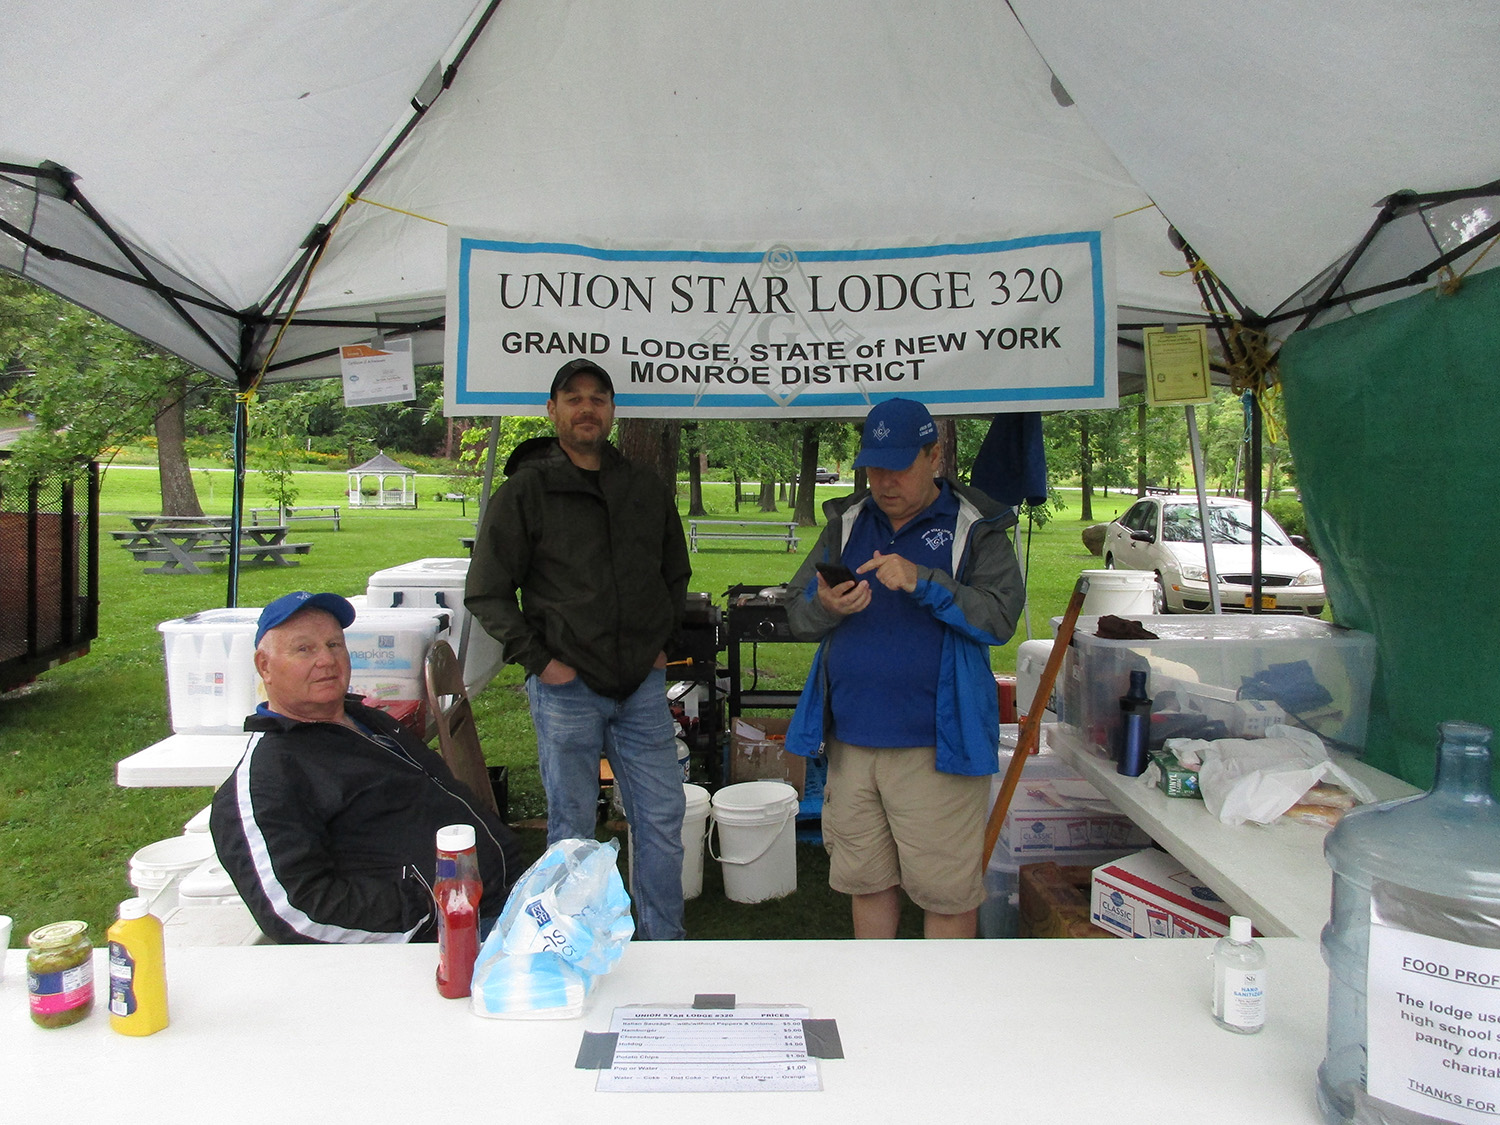 Union Star Lodge Members Raise Money For Projects